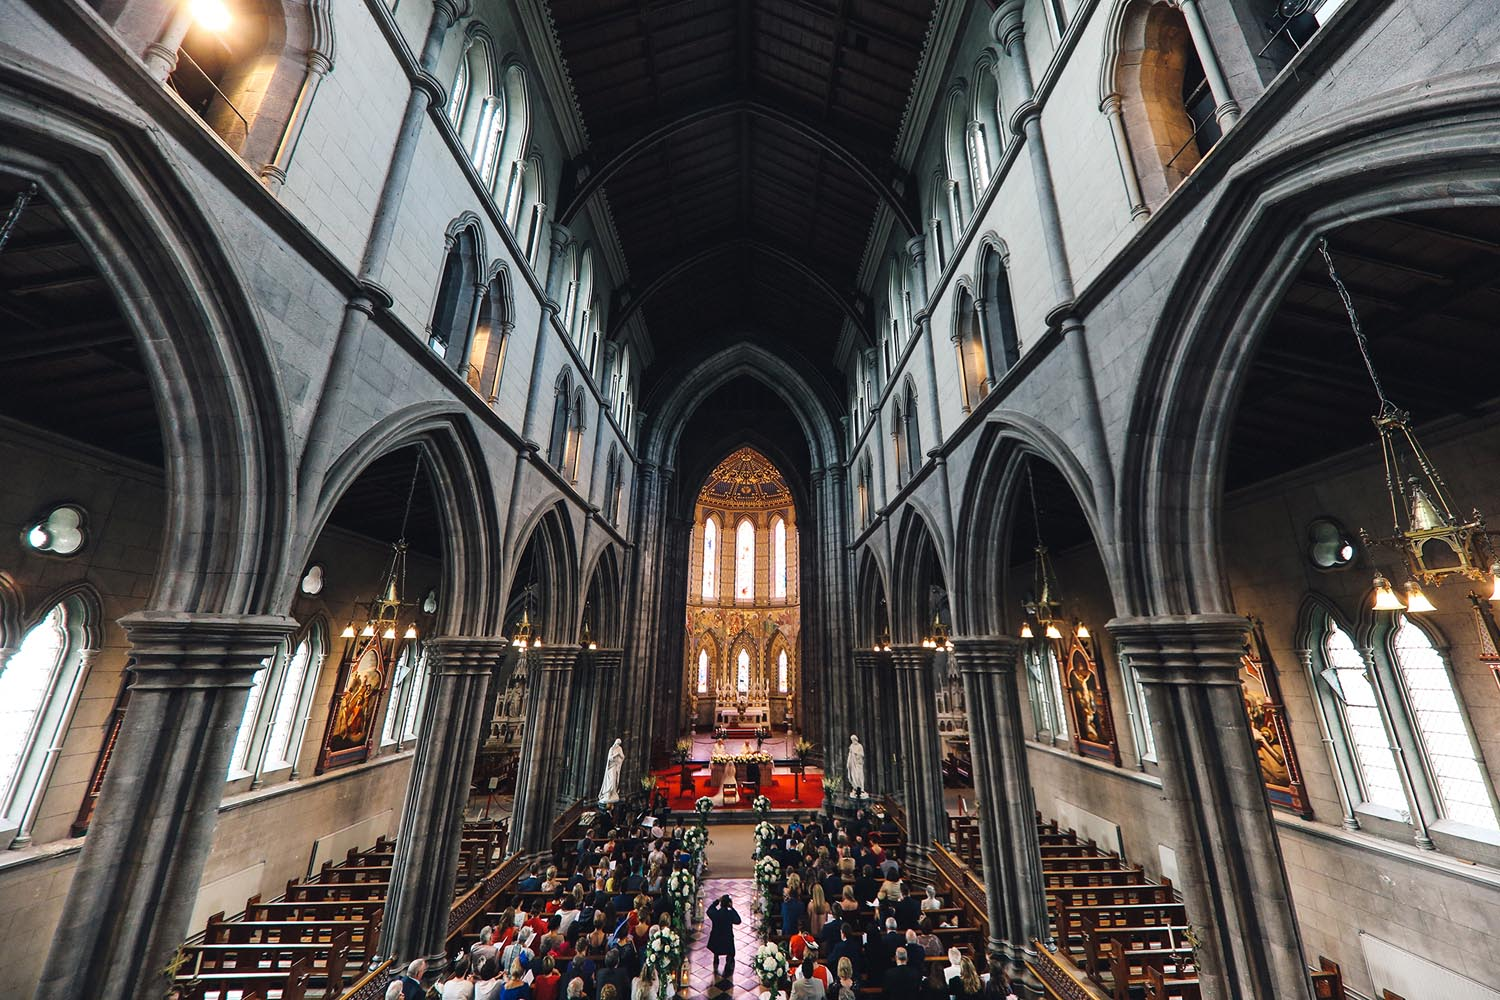 Shot of wedding guests in a Cathedral taken from above